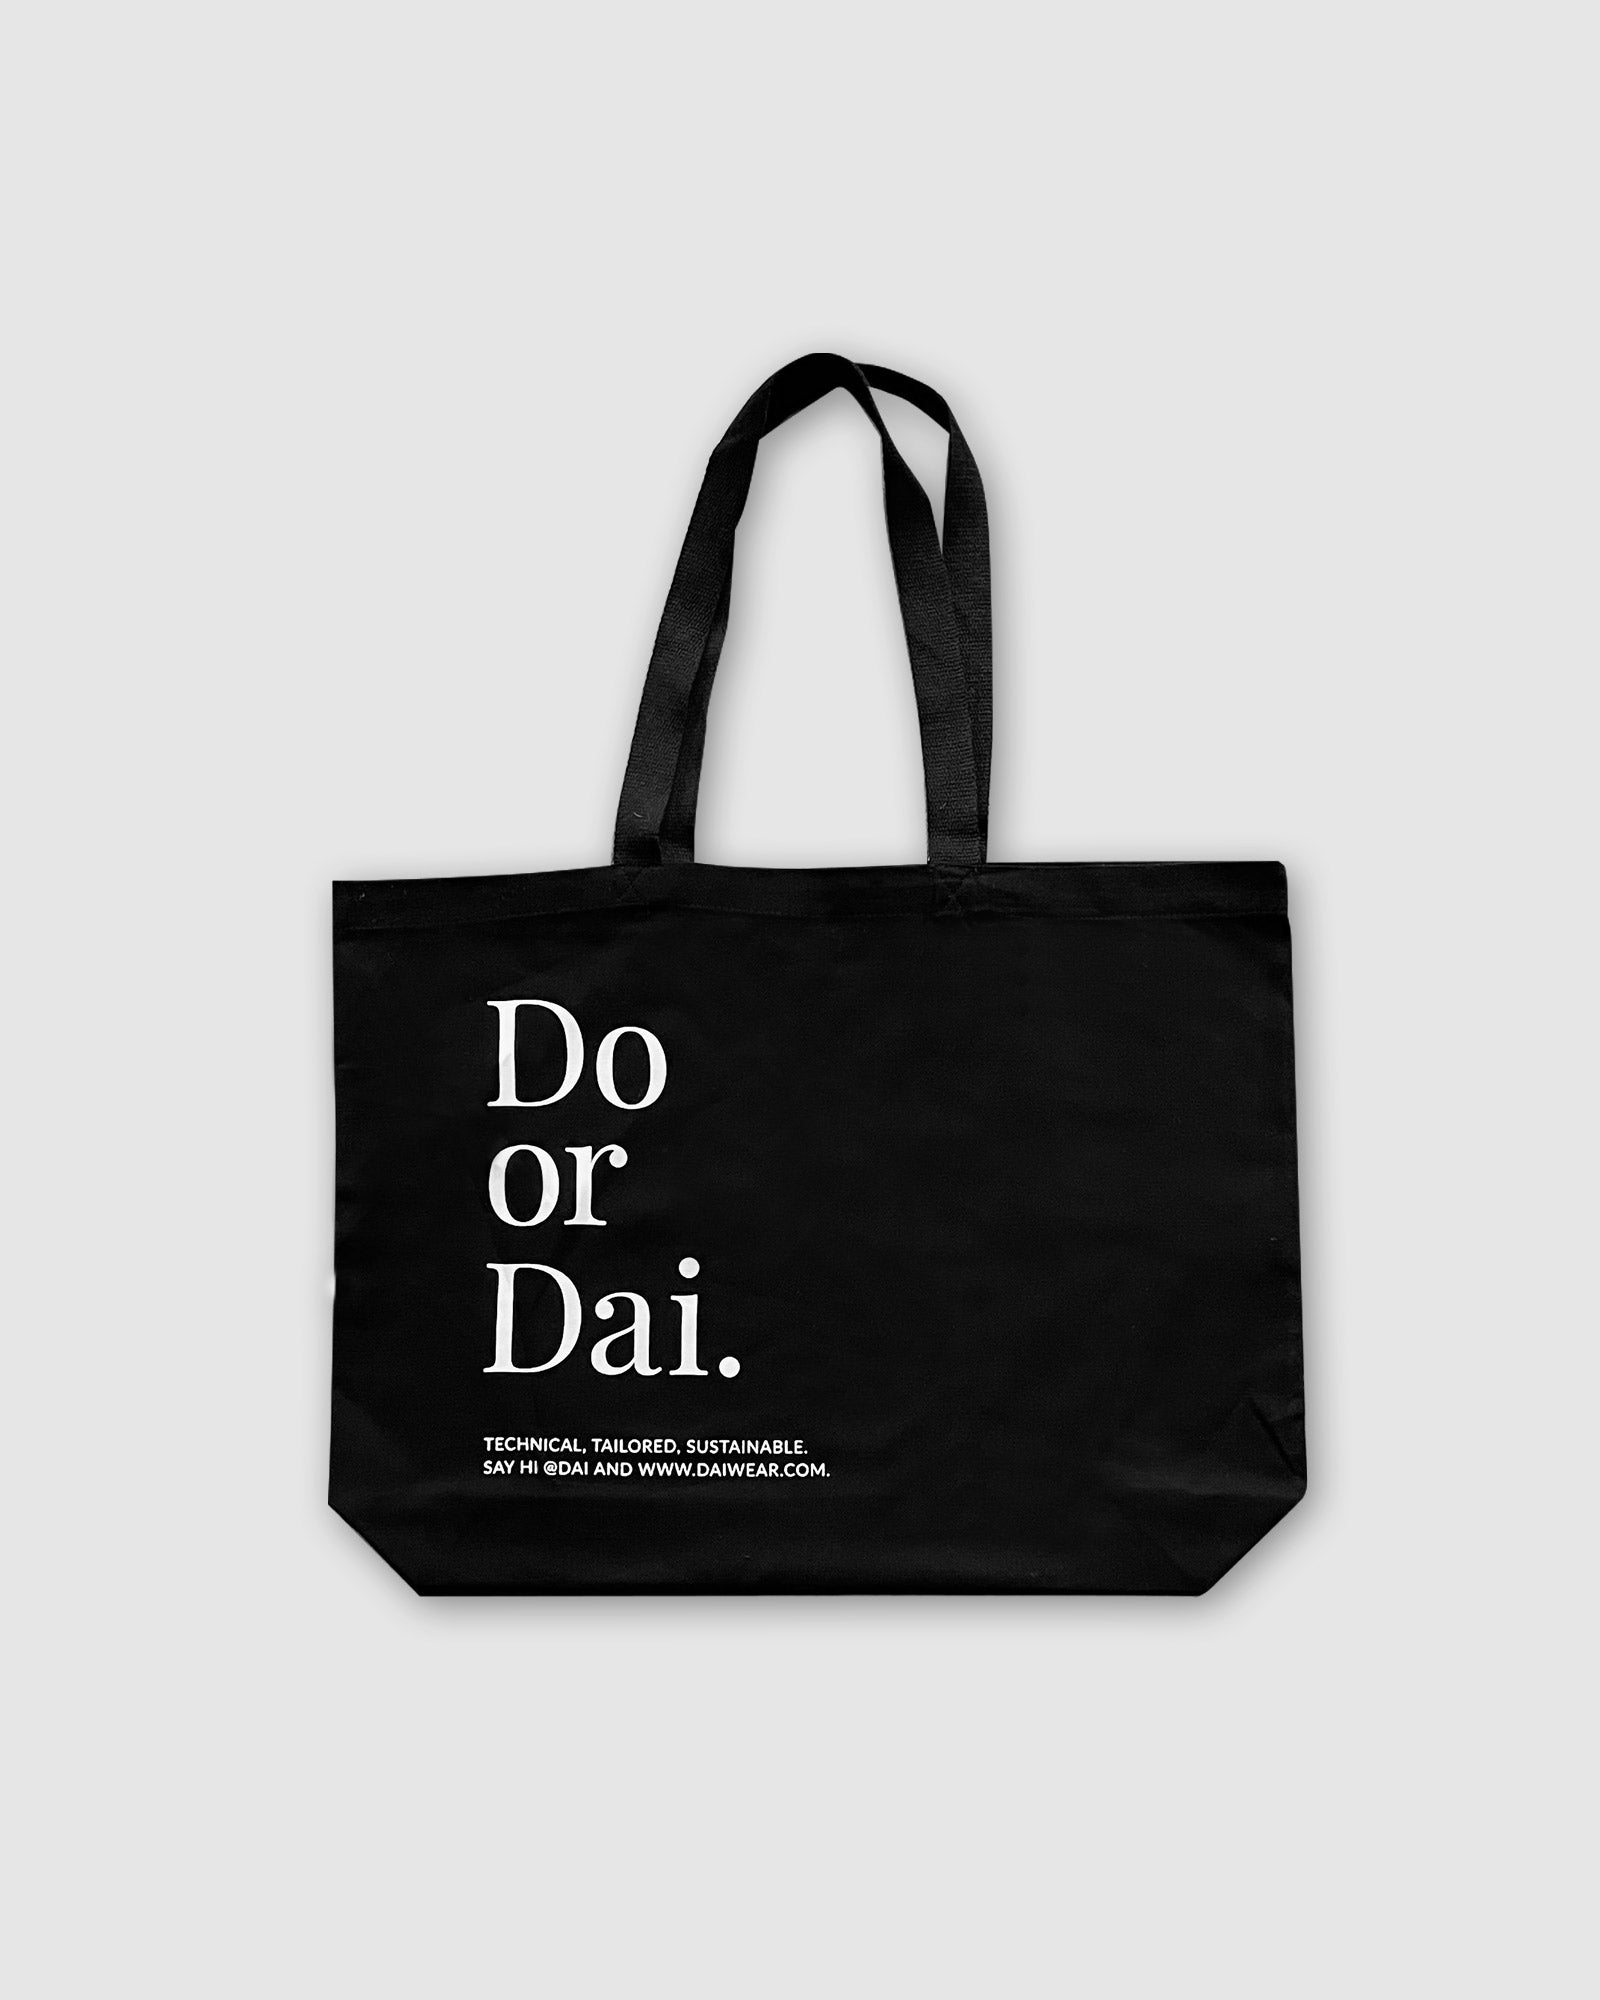 Do or Dai Limited Edition Tote Bag